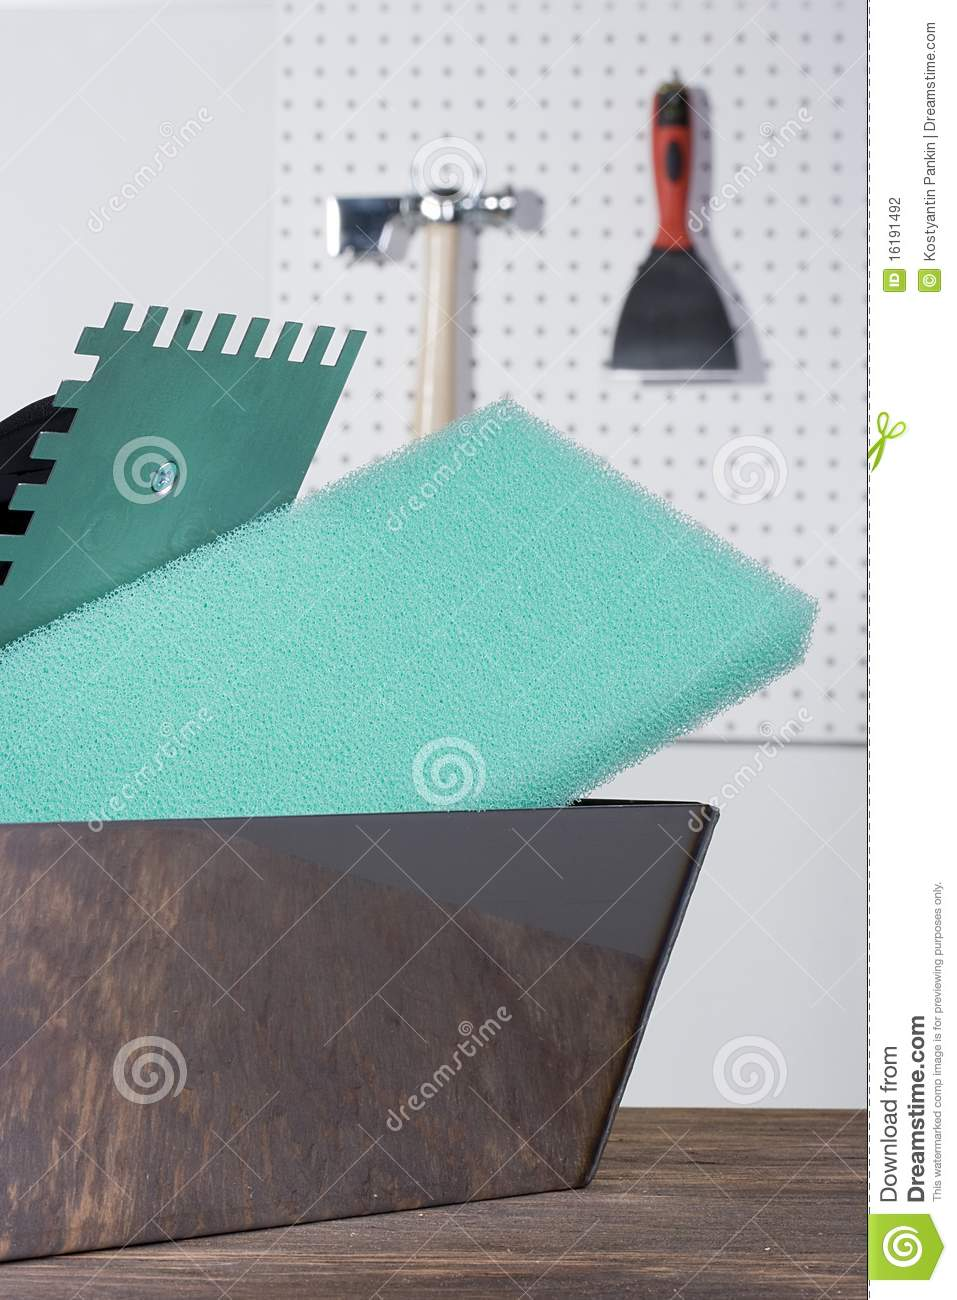 Plastering Tools Stock Photography Image 16191492